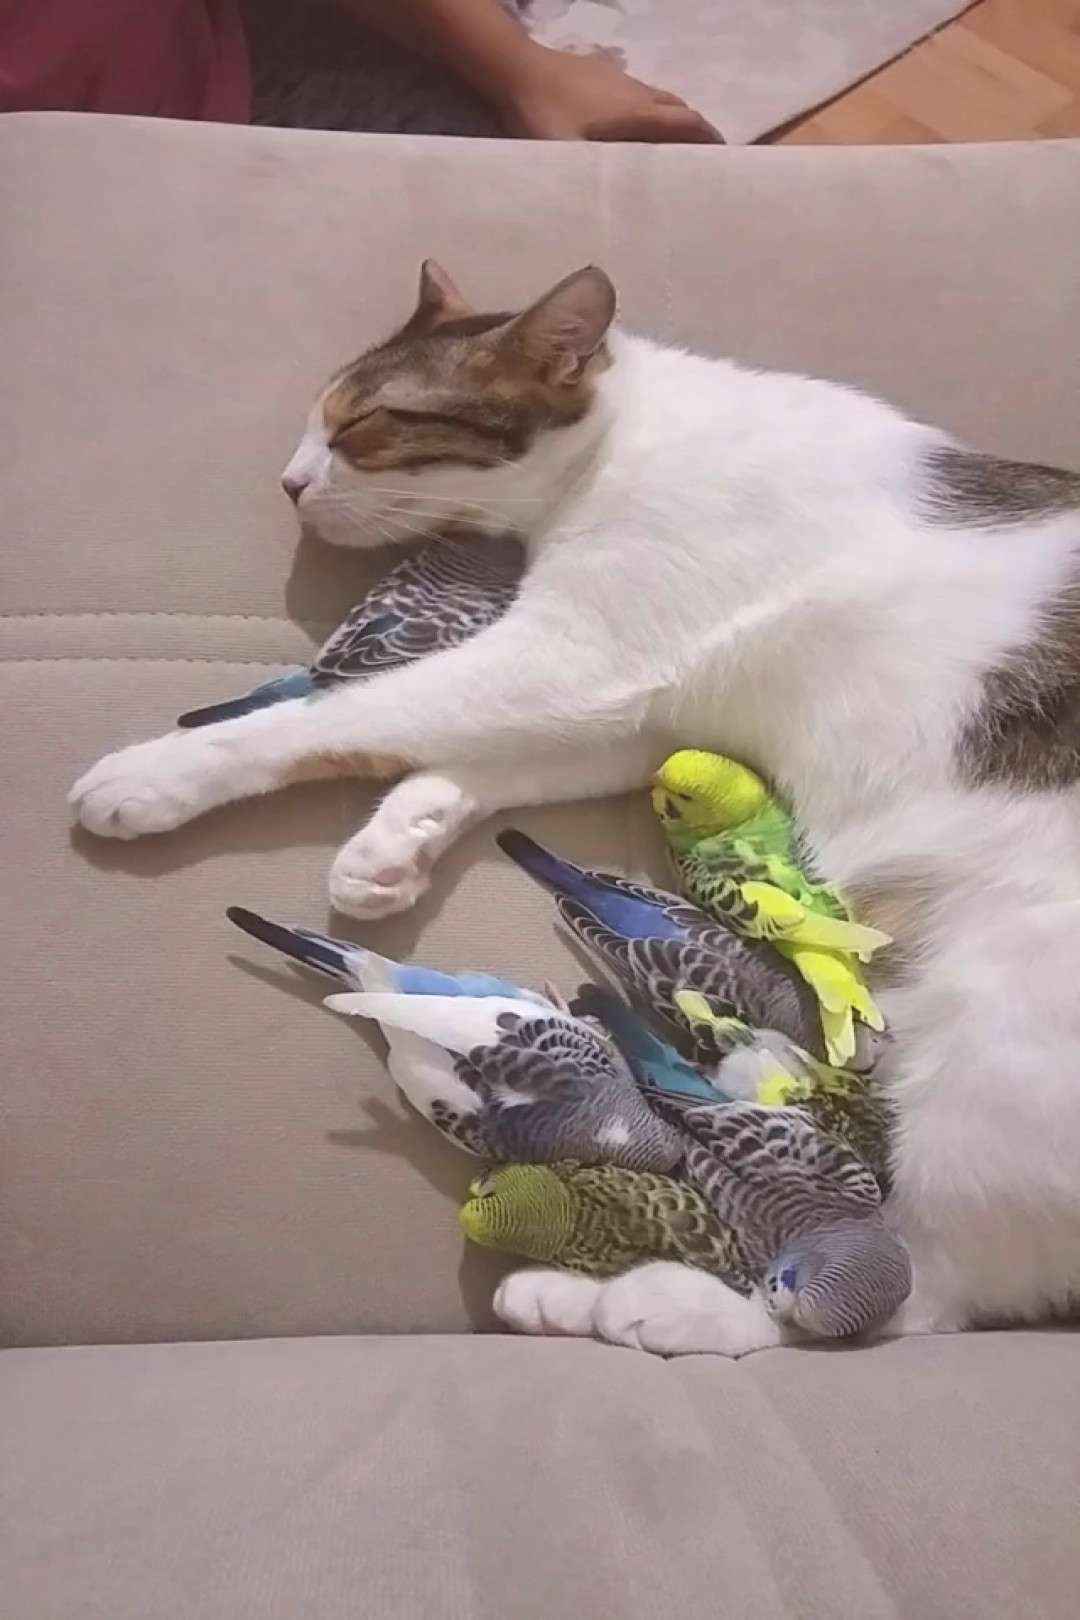 Cats and birds taking a nap. Cats and Birds on Our Pinterest Dog Boards. Why Not? I Imagine All of